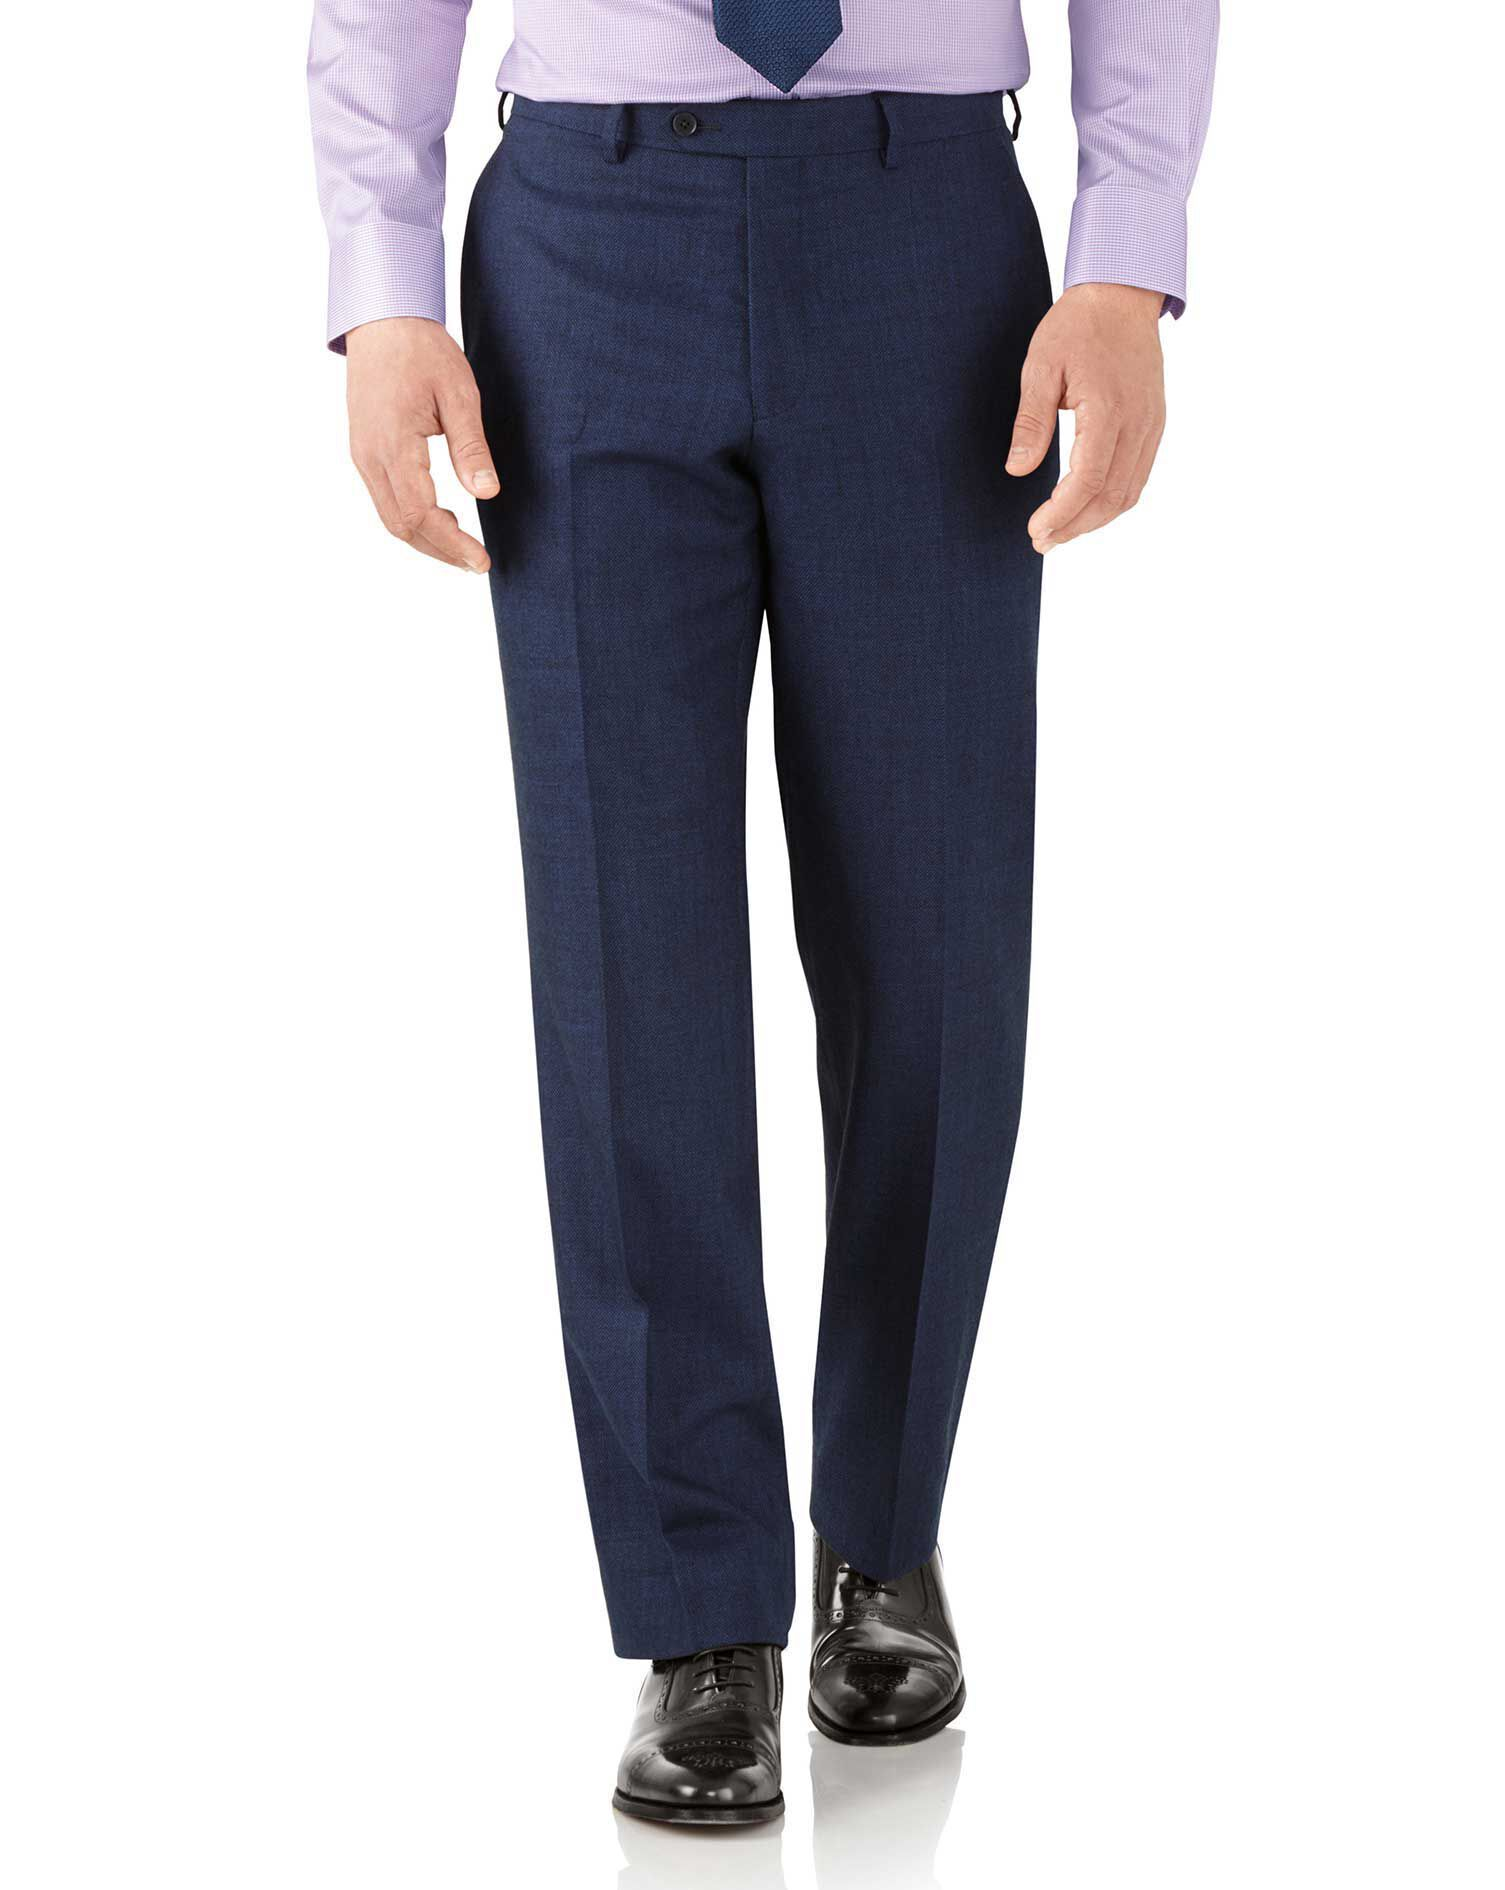 Royal Blue Classic Fit Flannel Business Suit Trousers Size W36 L30 by Charles Tyrwhitt